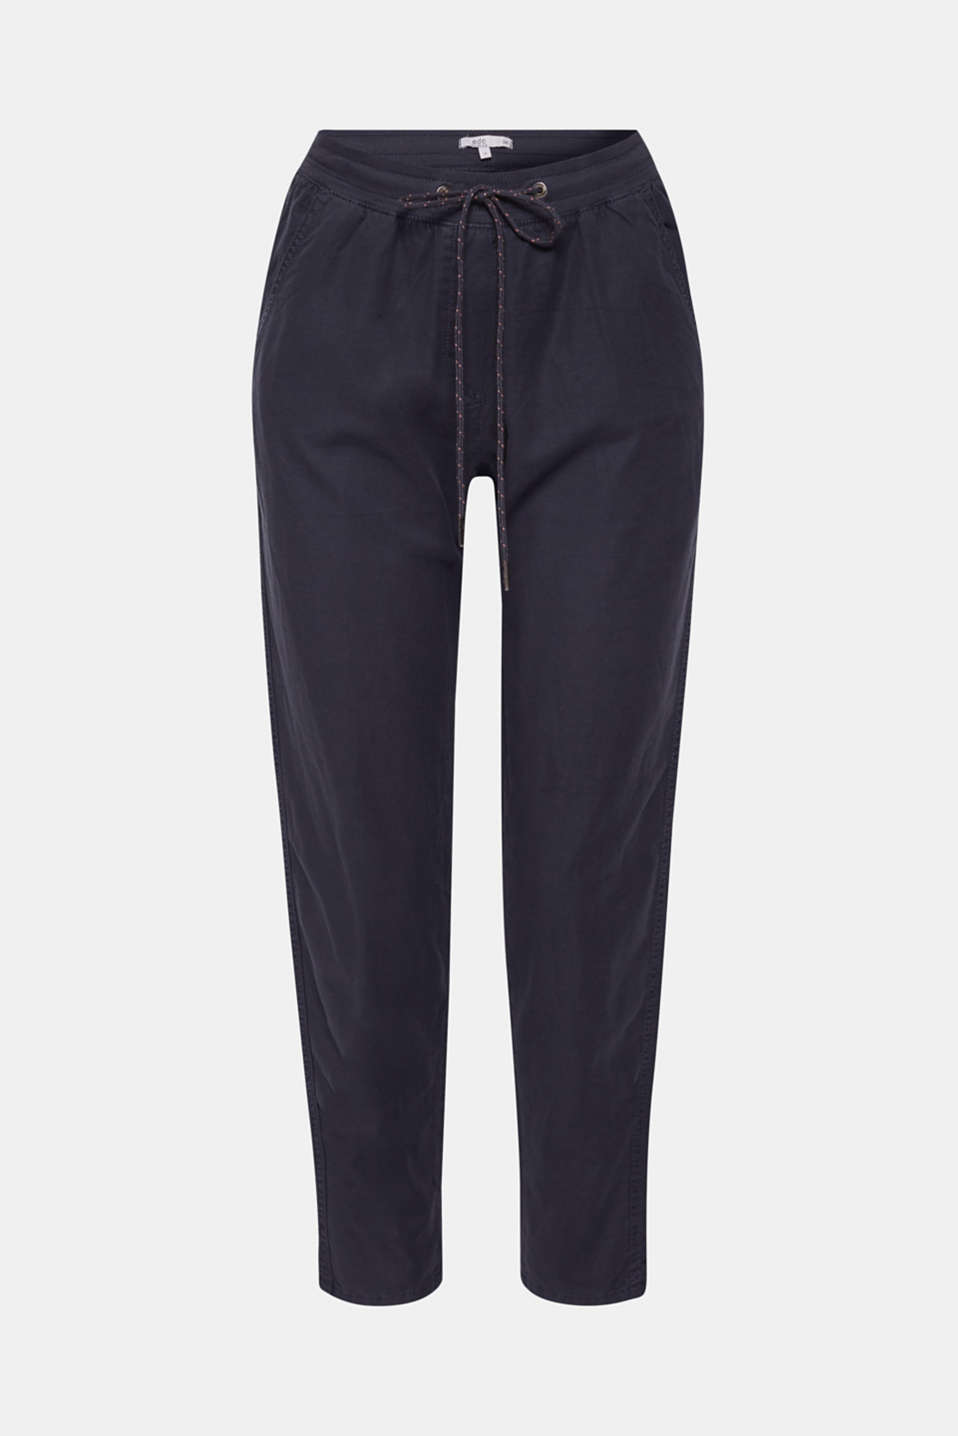 Pants woven, NAVY, detail image number 7